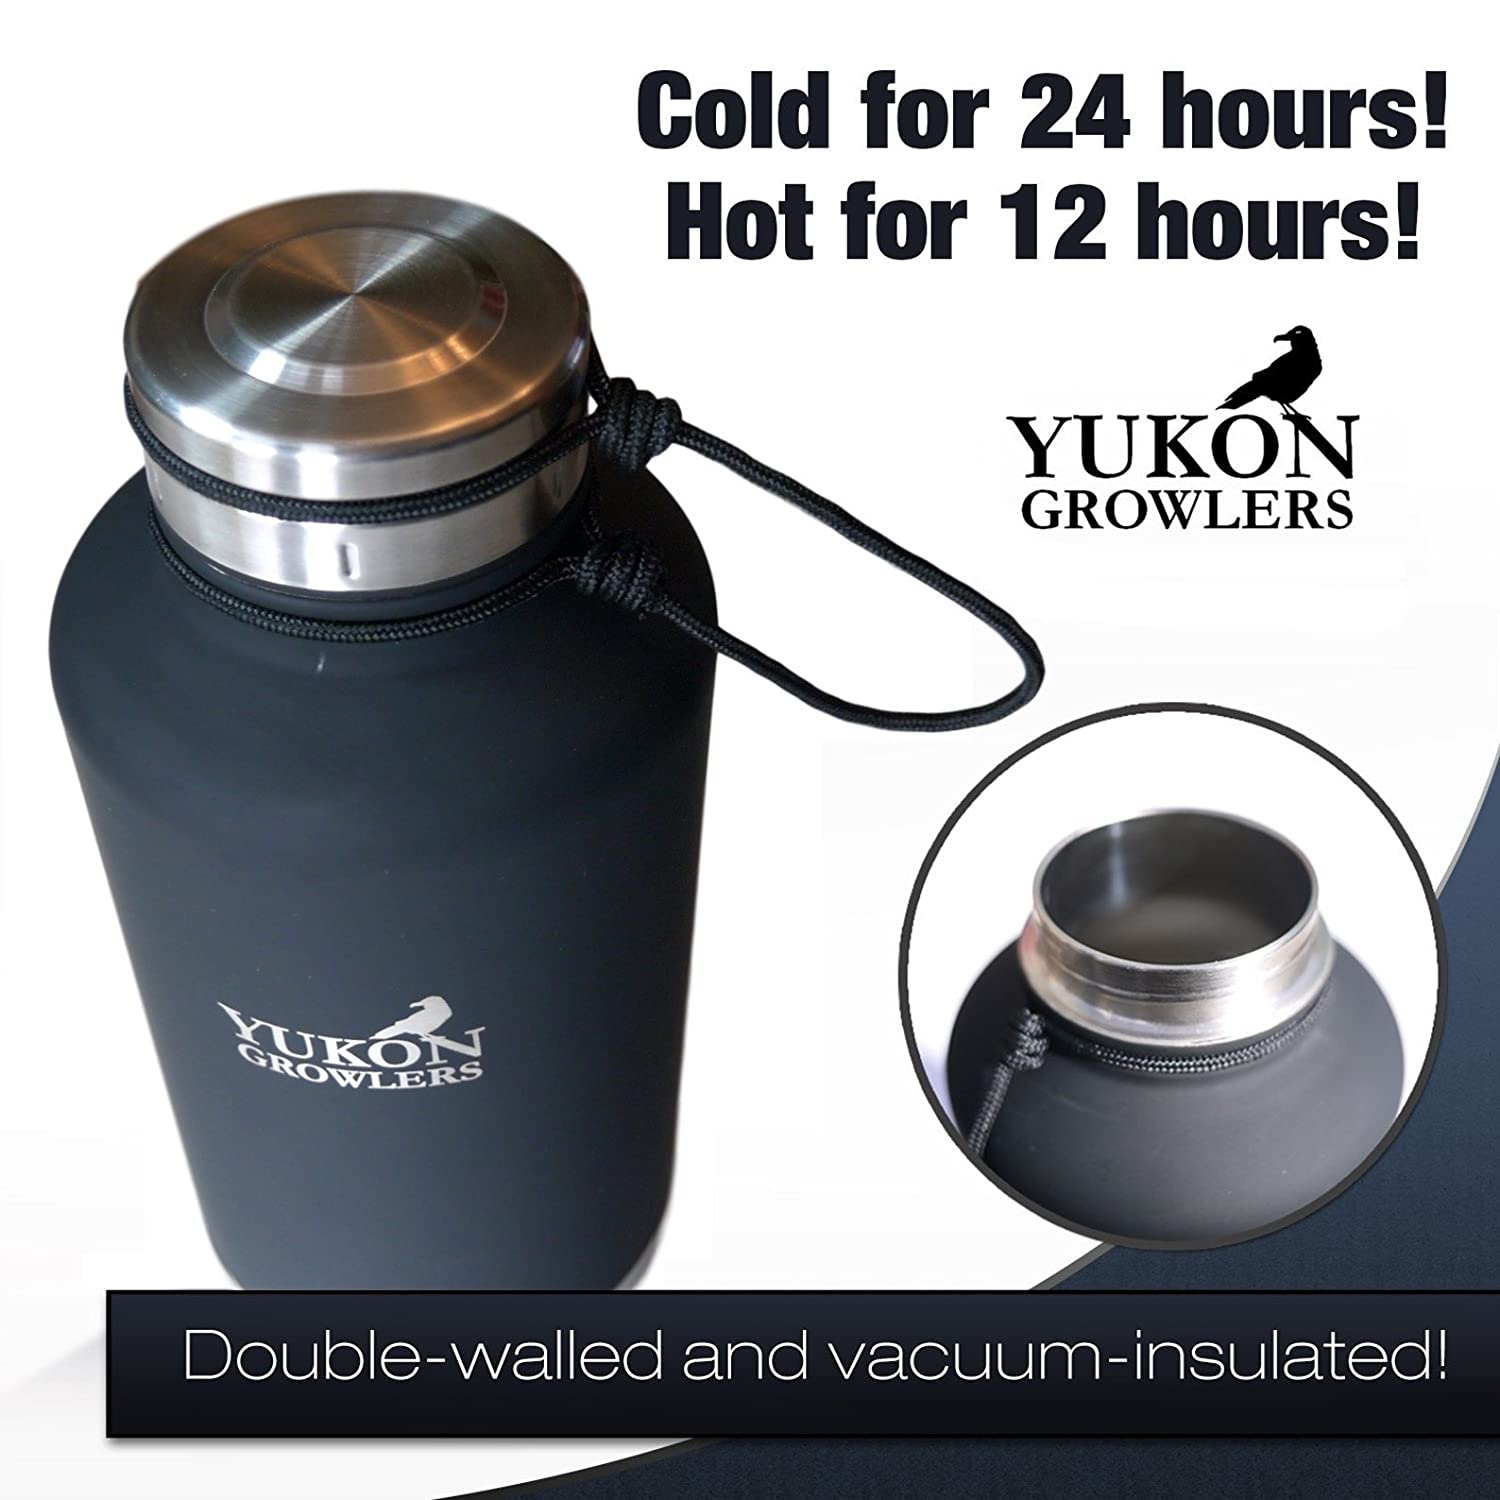 Yukon Growlers Insulated Beer Growler 64 oz Atlin Imports Ltd. Improved Lid Keep Your Beer Cold and Carbonated for 24 Hours in This Stainless Steel Vacuum Water Bottle Also Keeps Coffee Hot